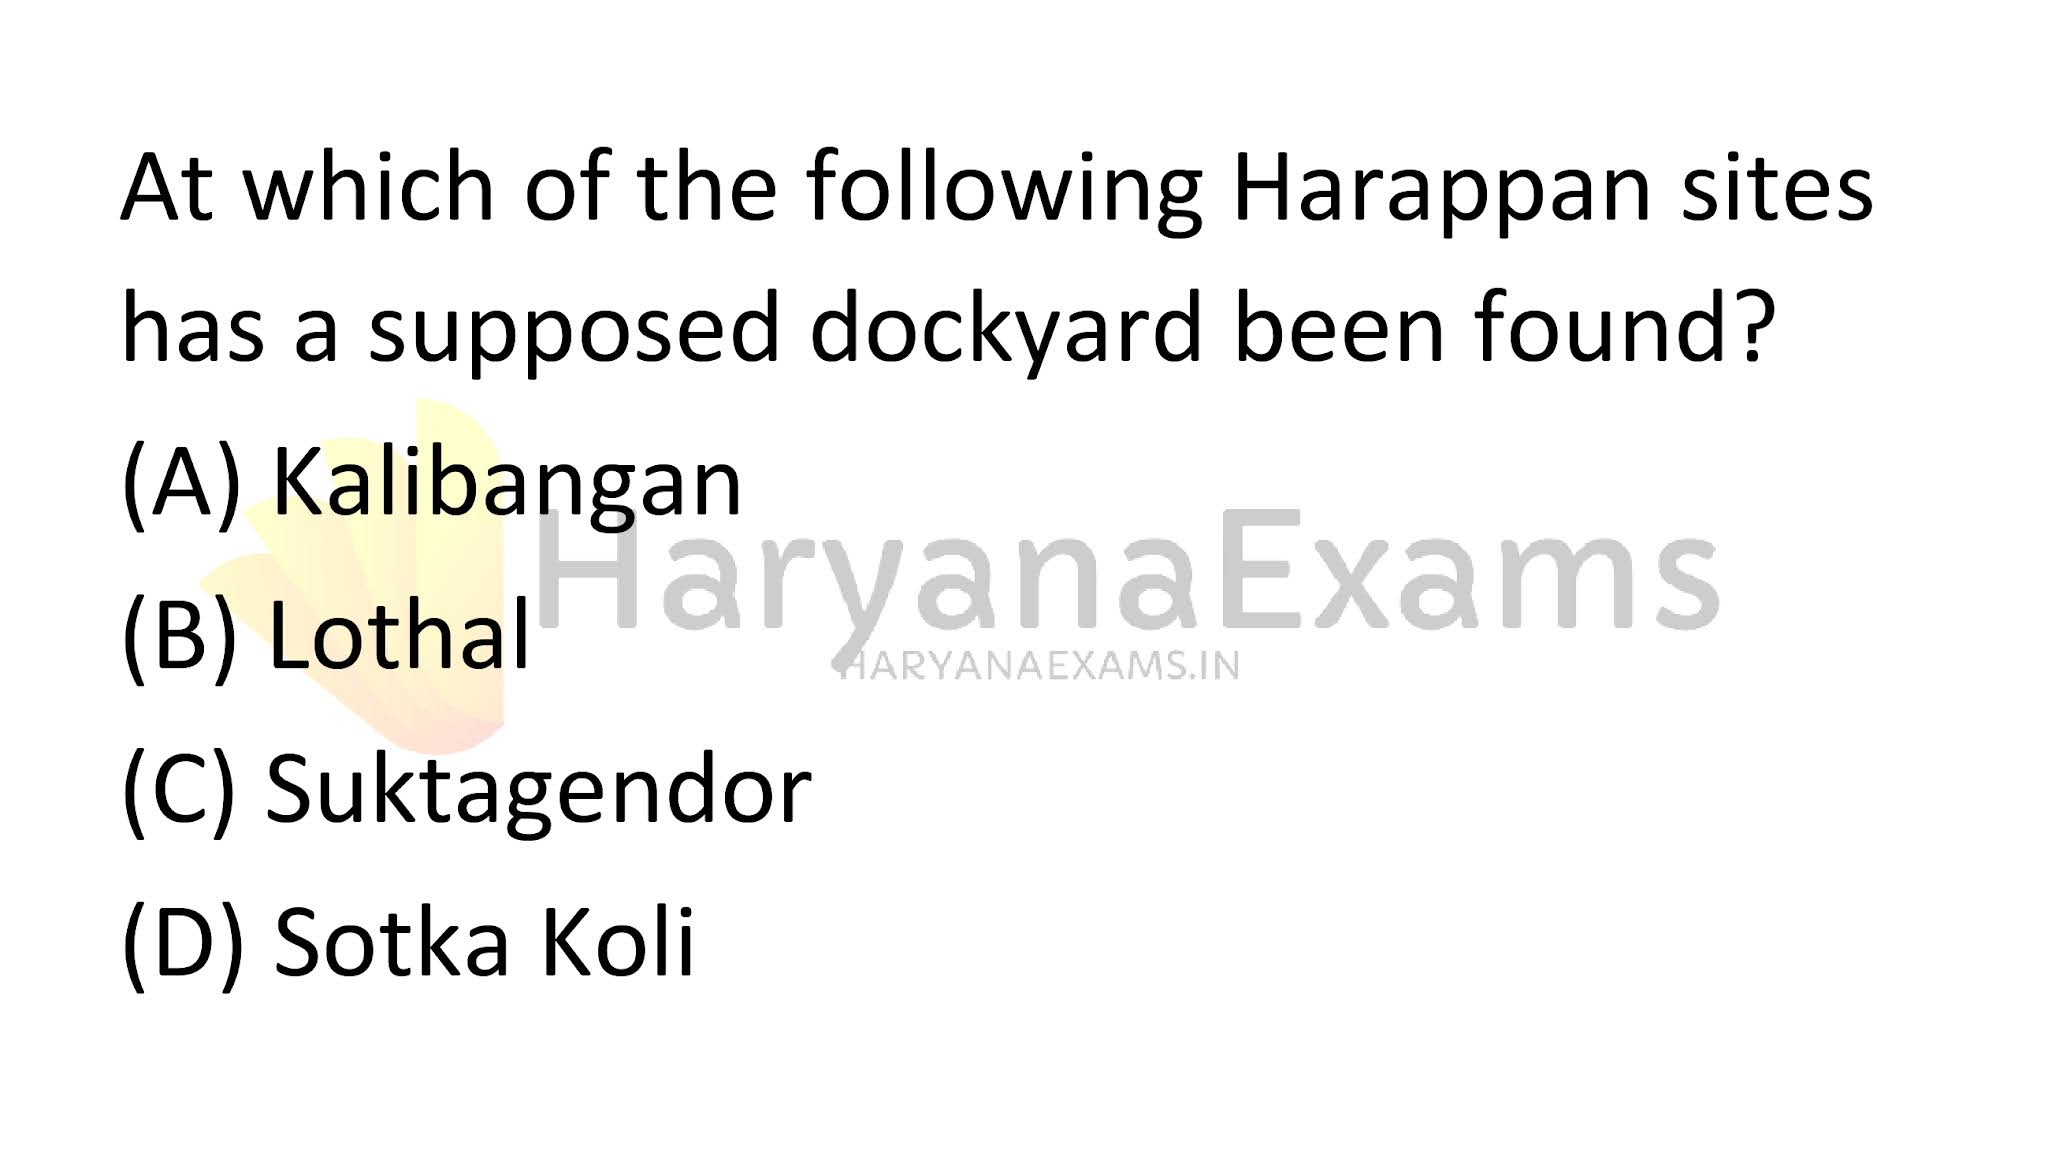 At which of the following Harappan sites has a supposed dockyard been found?